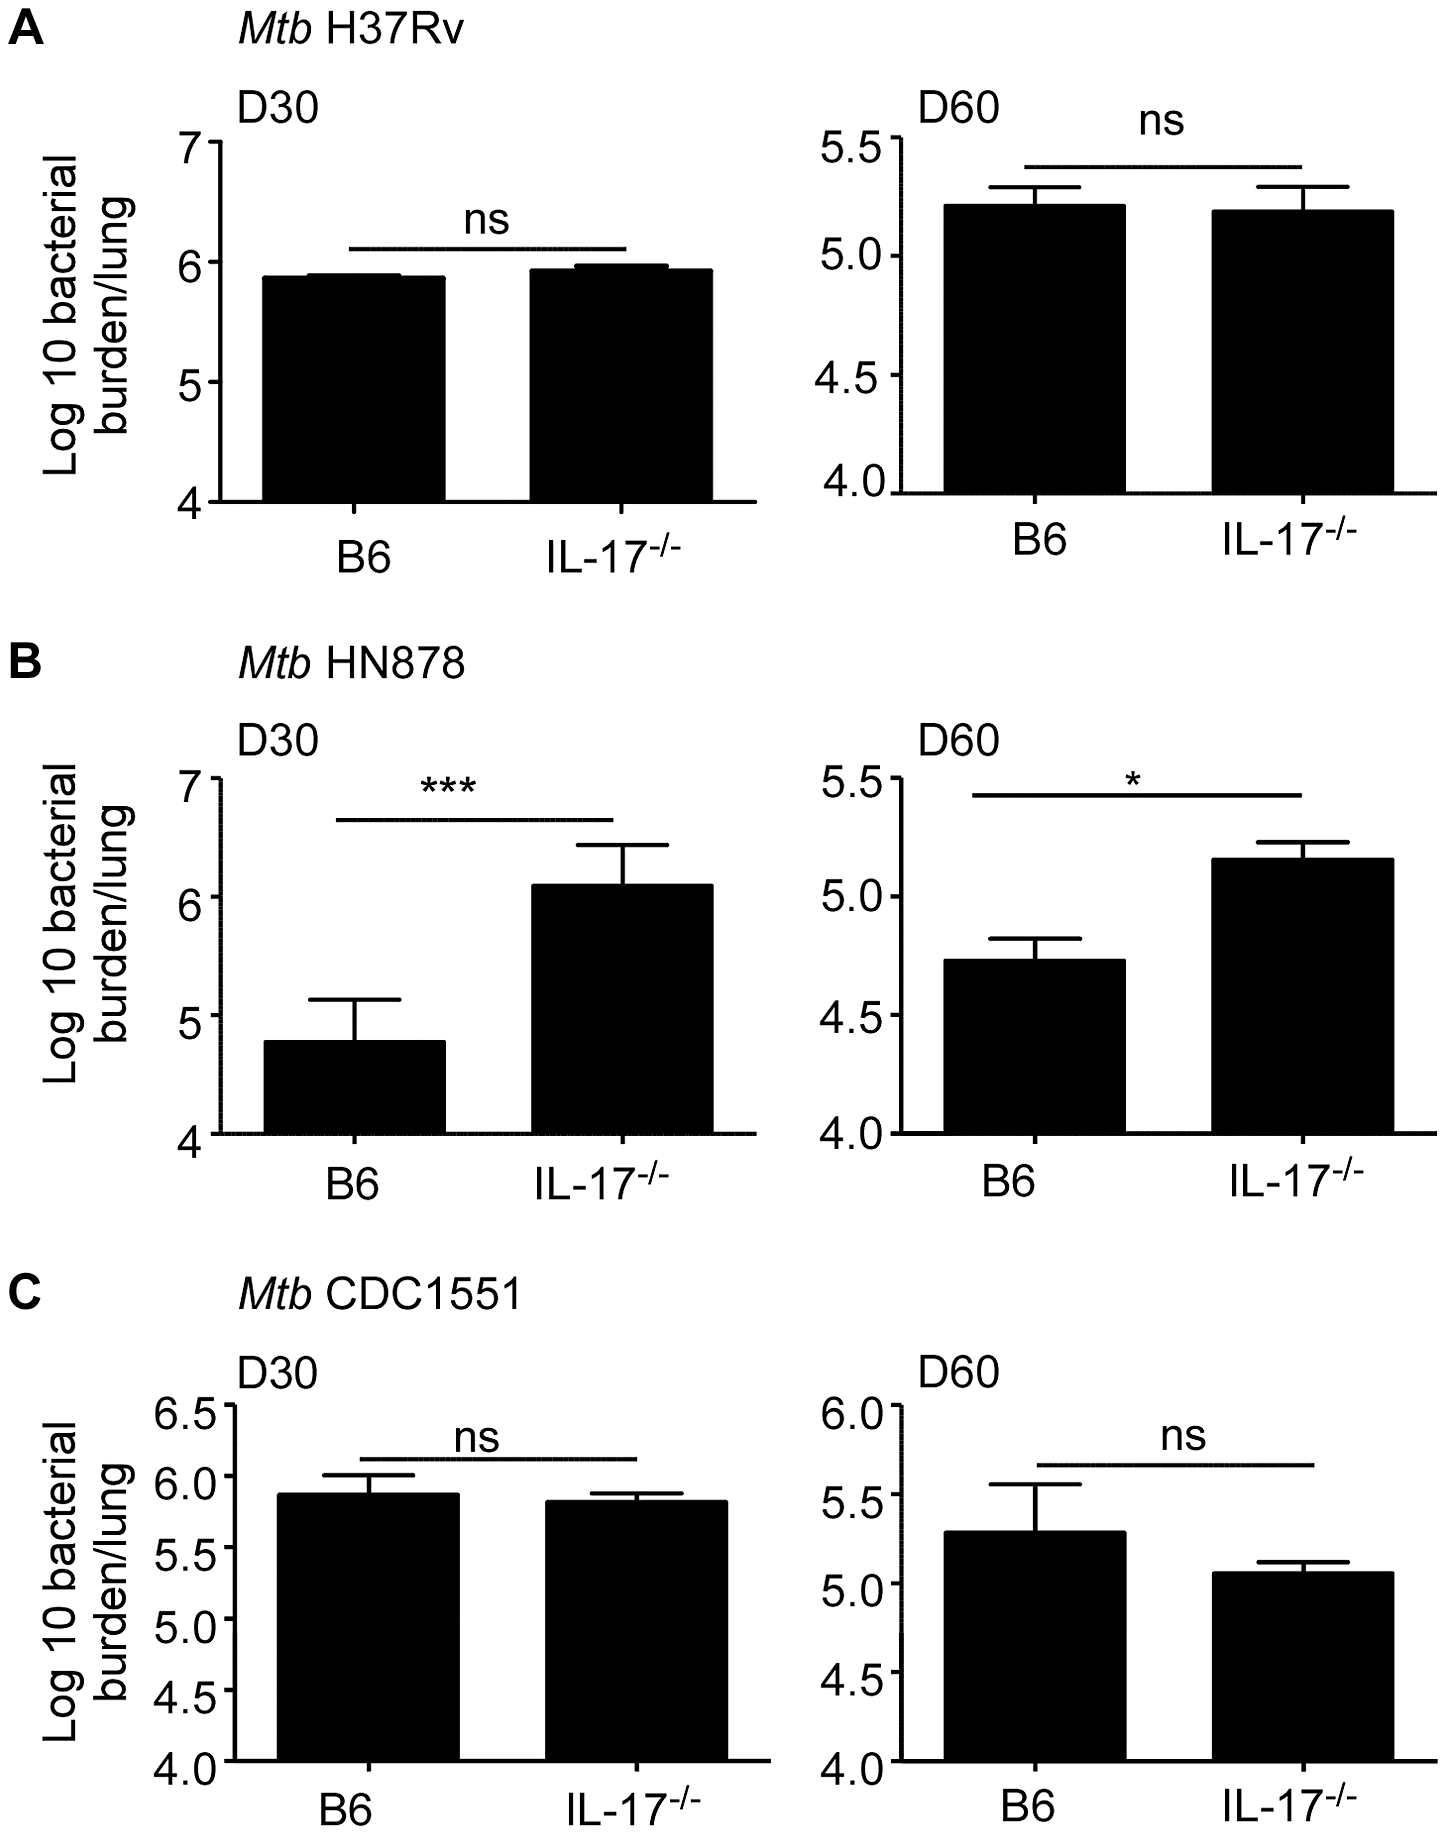 IL-17 is required for protective immunity against <i>Mtb</i> HN878 infection.